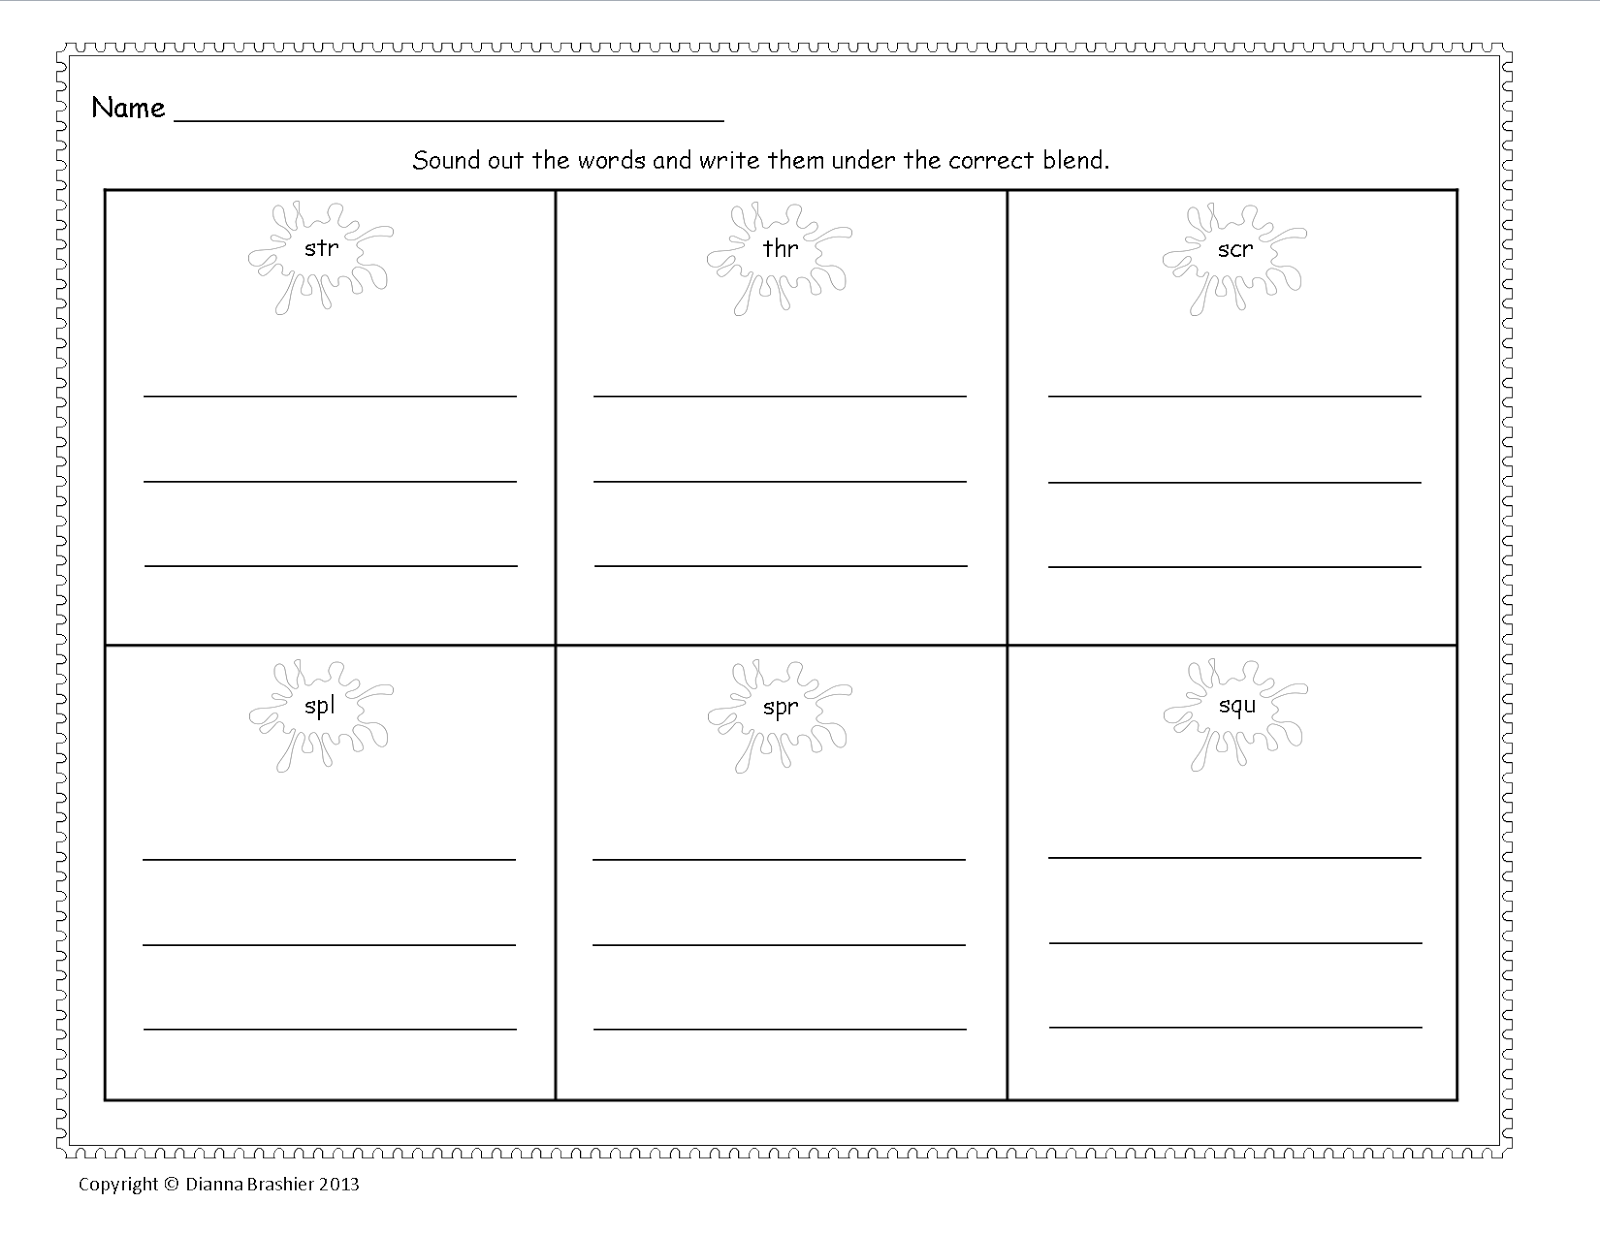 Spr Worksheet Gallery